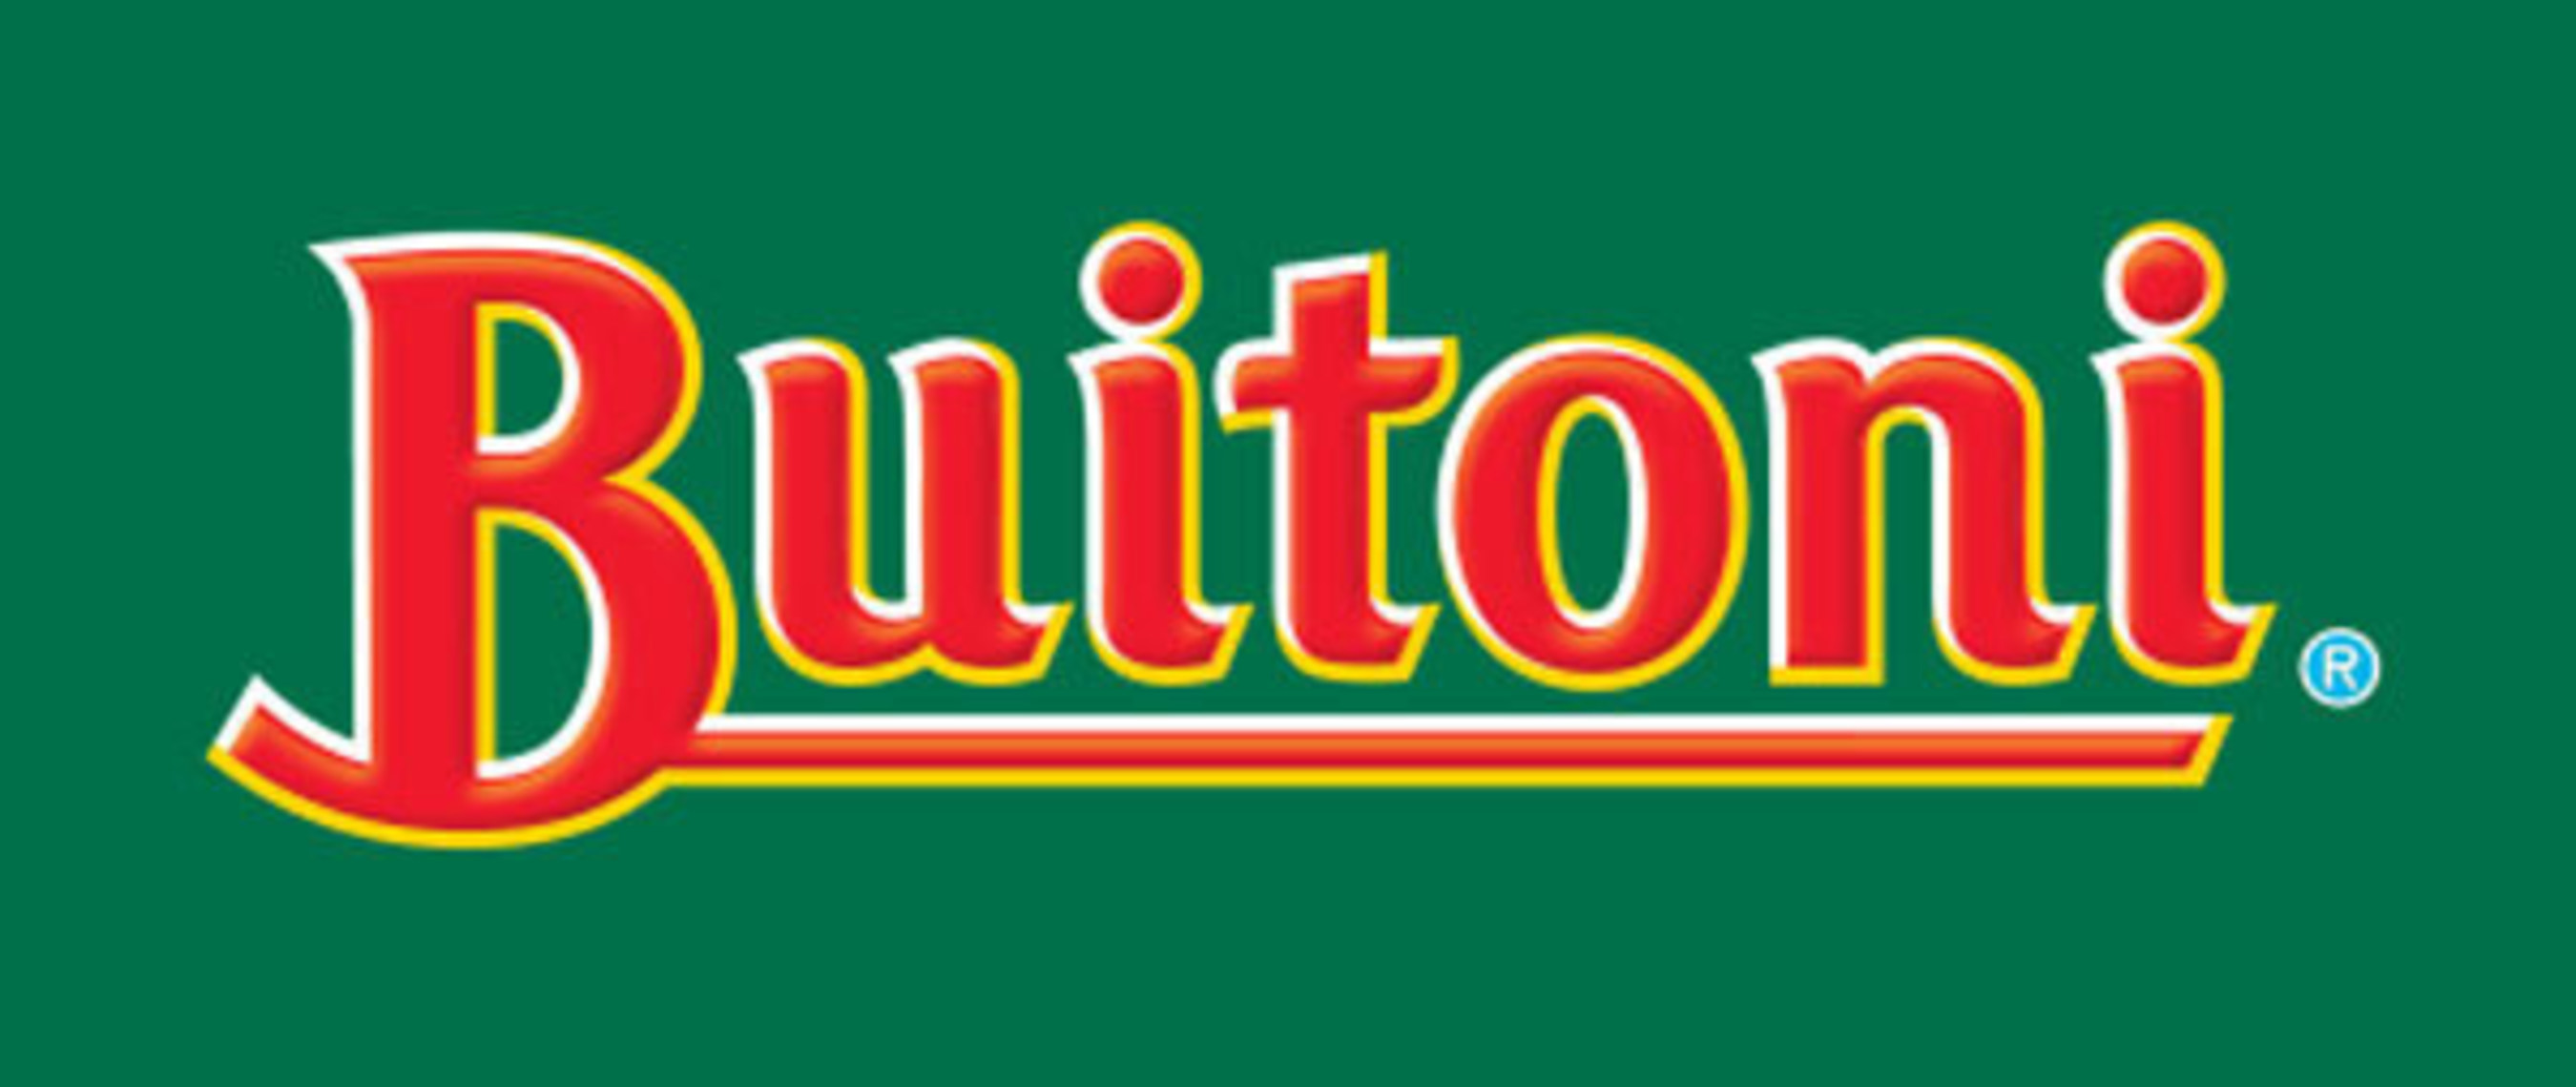 BUITONI(R) has been creating award-winning Italian foods for more than 175 years. For product news and information, visit Buitoni.com.